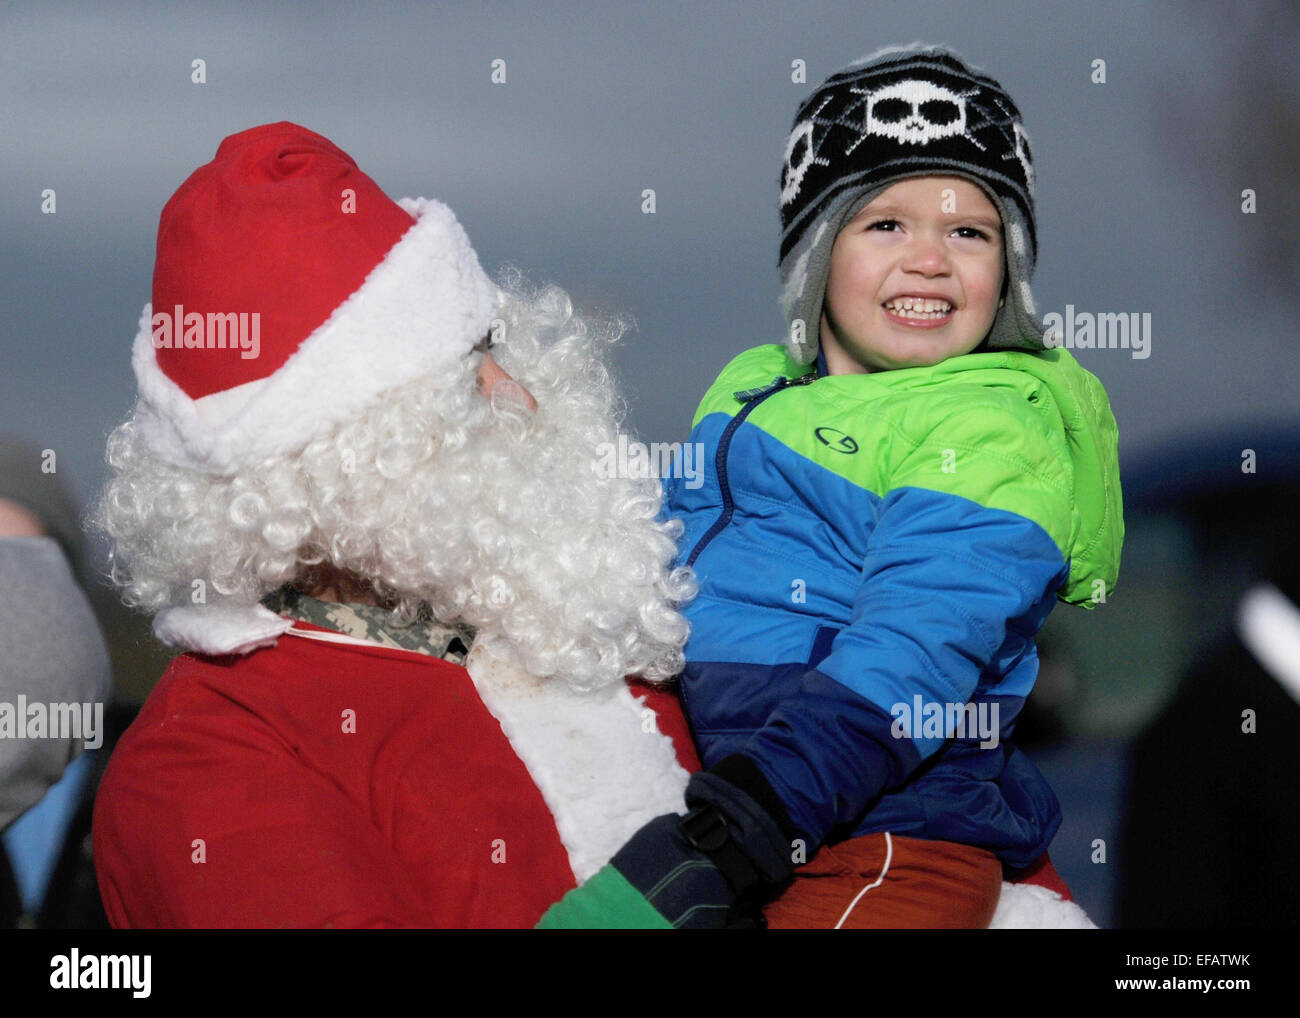 A Us Air Force Airman Dressed As Santa Claus Holds A Child From The